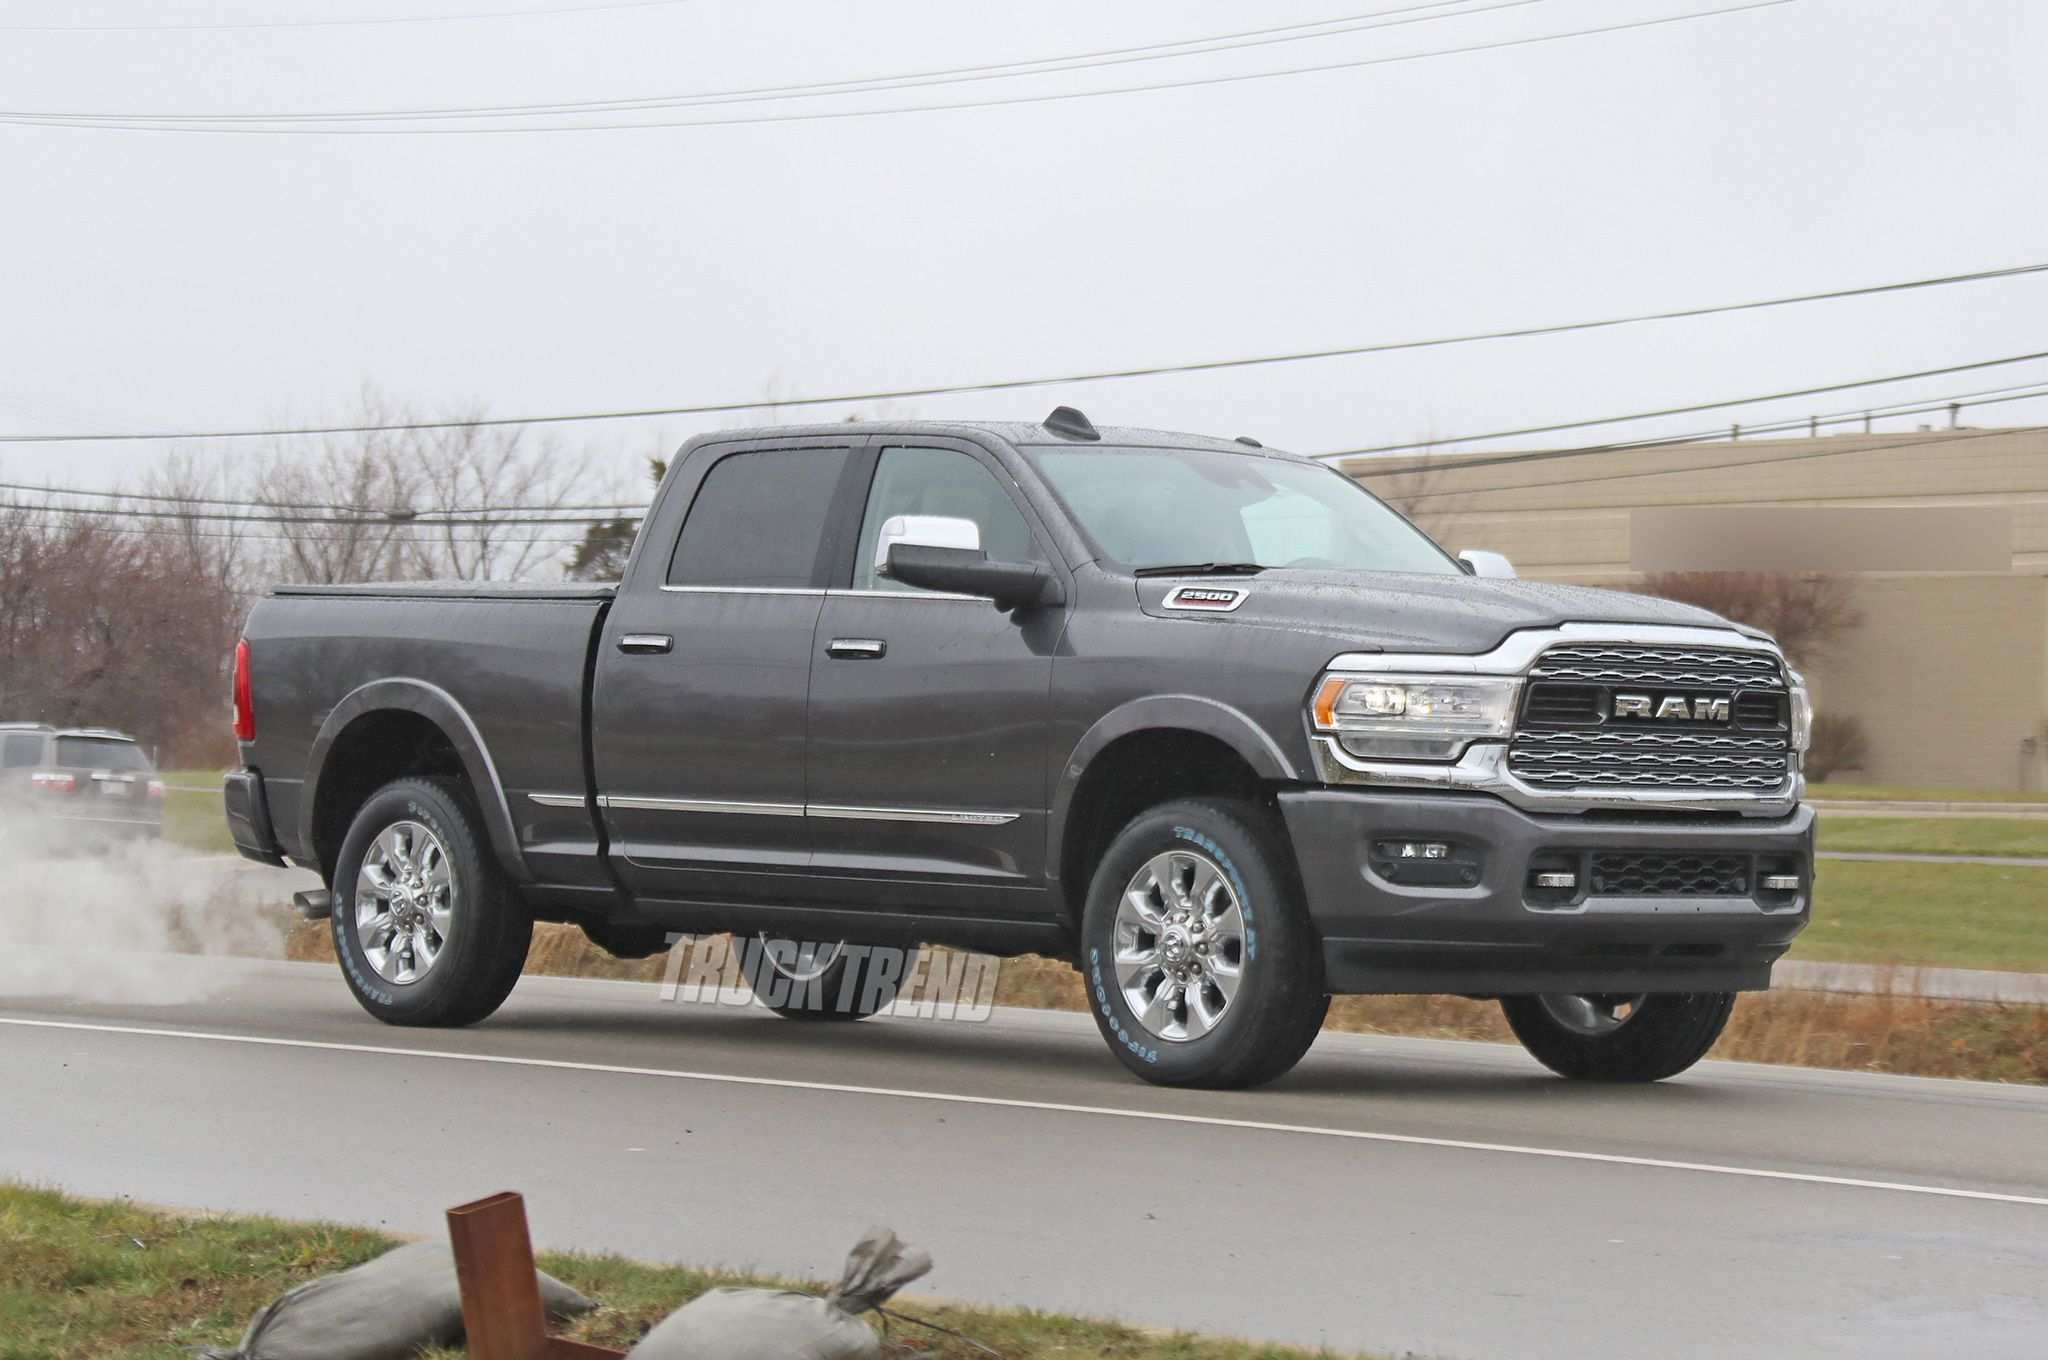 15 Gallery of 2020 Dodge Ram 2500 Cummins Price and Review with 2020 Dodge Ram 2500 Cummins